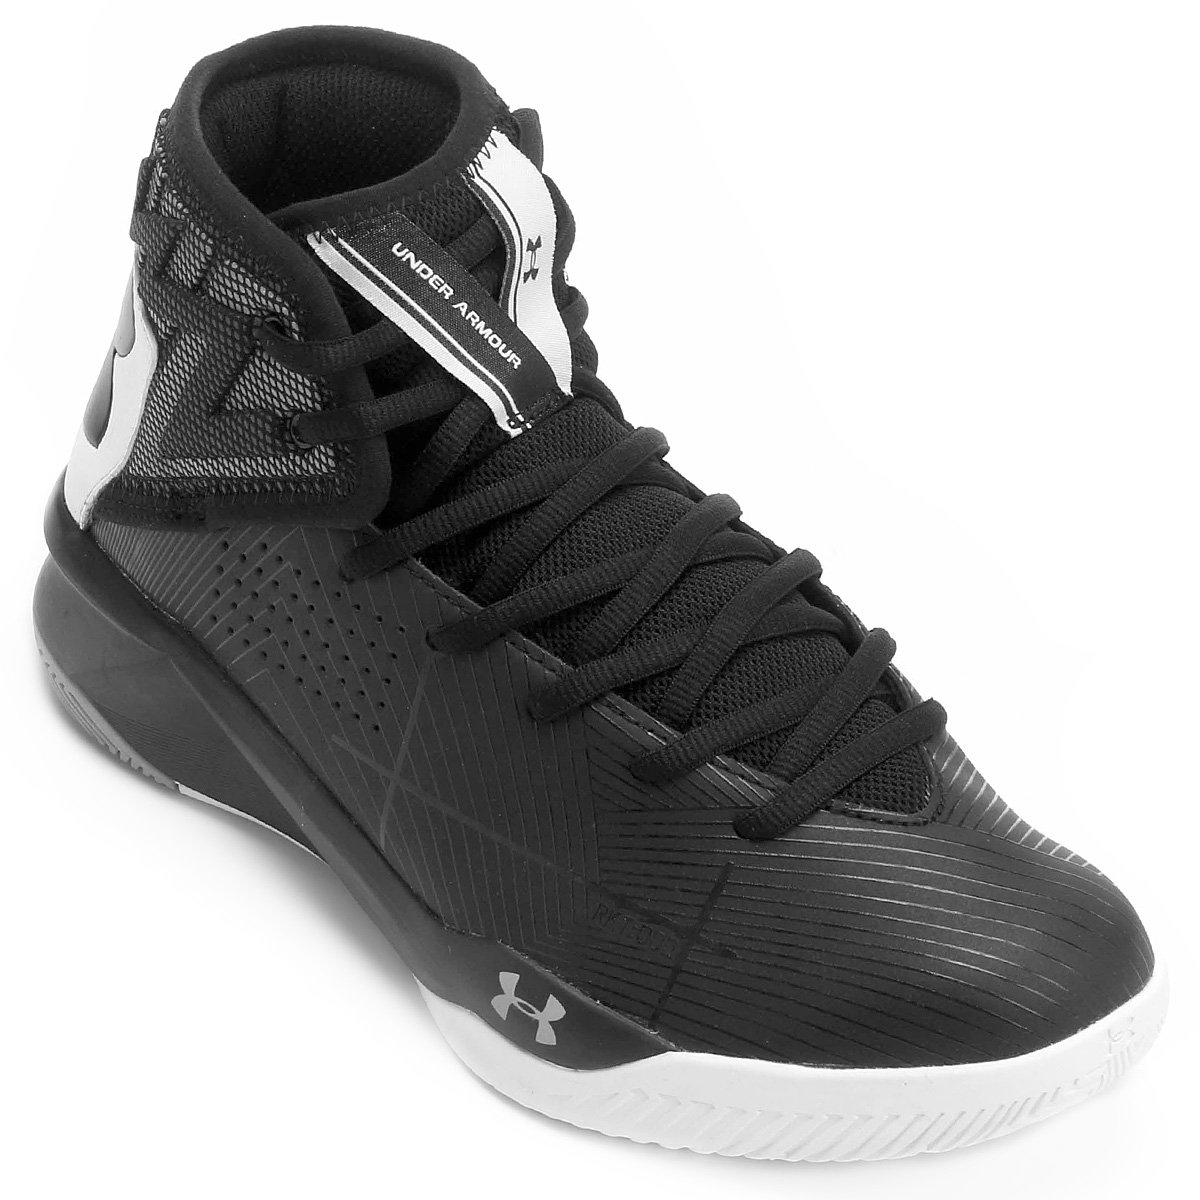 best sneakers 91365 25507 Tênis Under Armour Rocket 2 Masculino - Preto e Branco